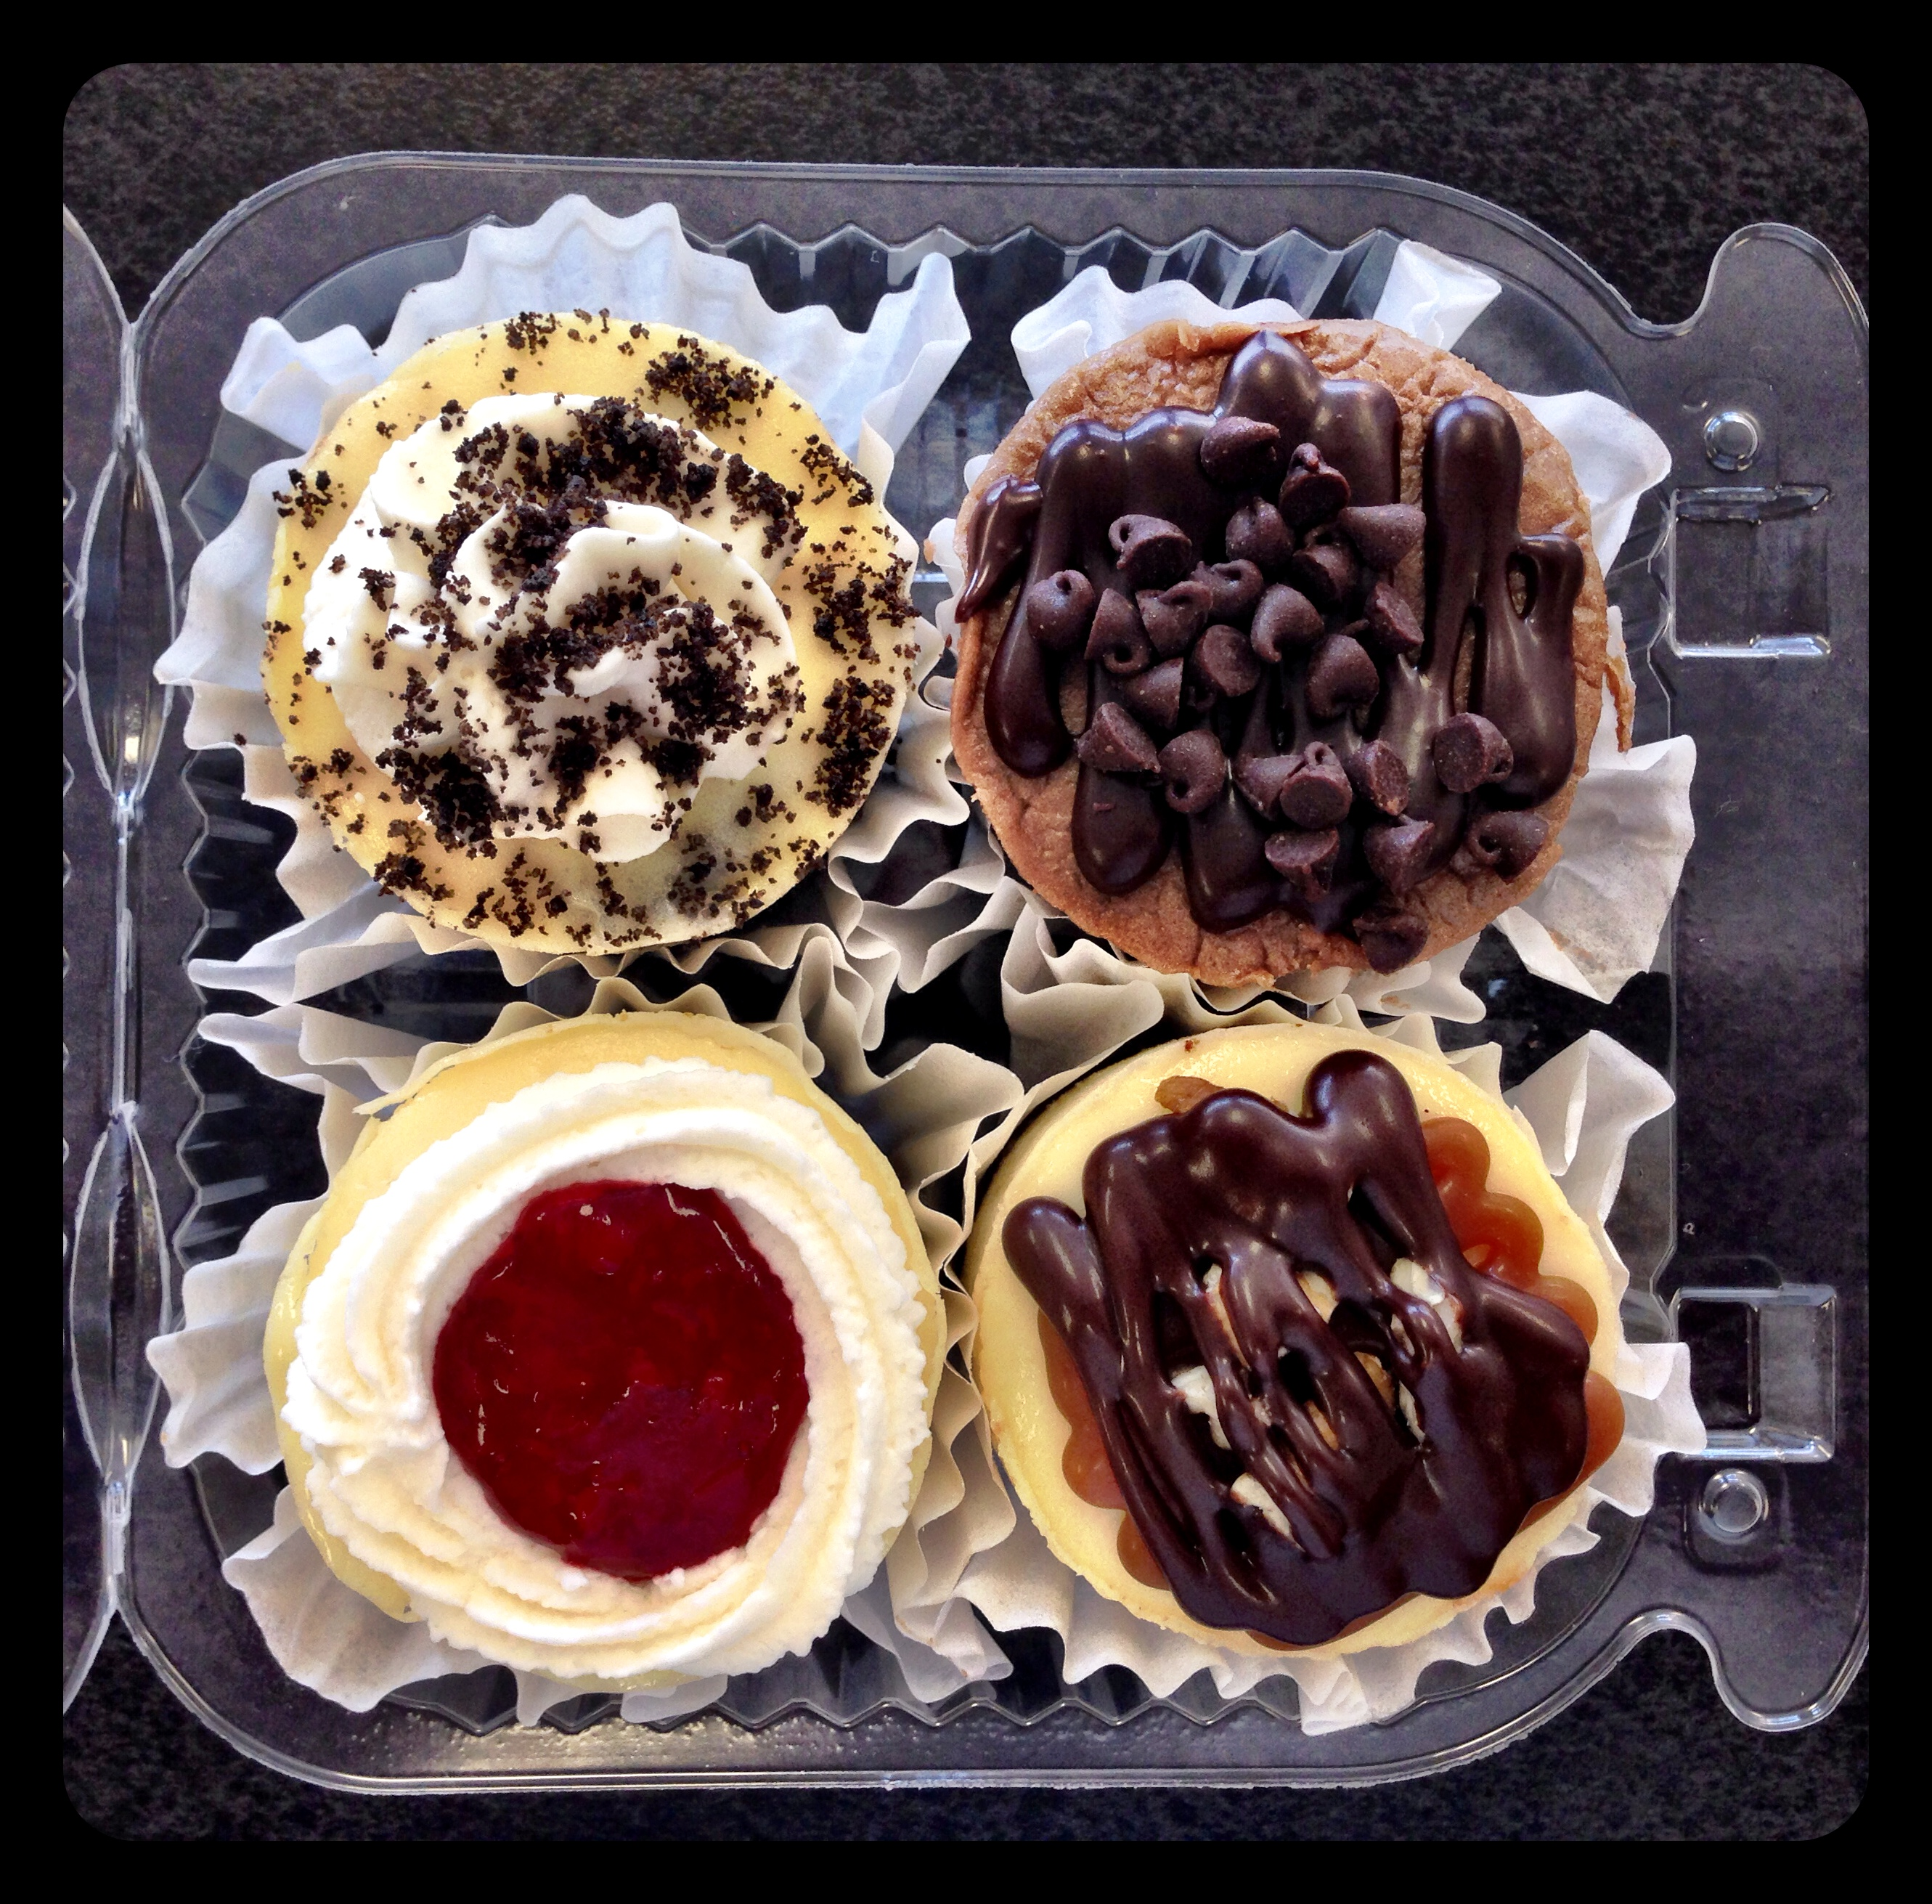 Szotski's Cheesecakes